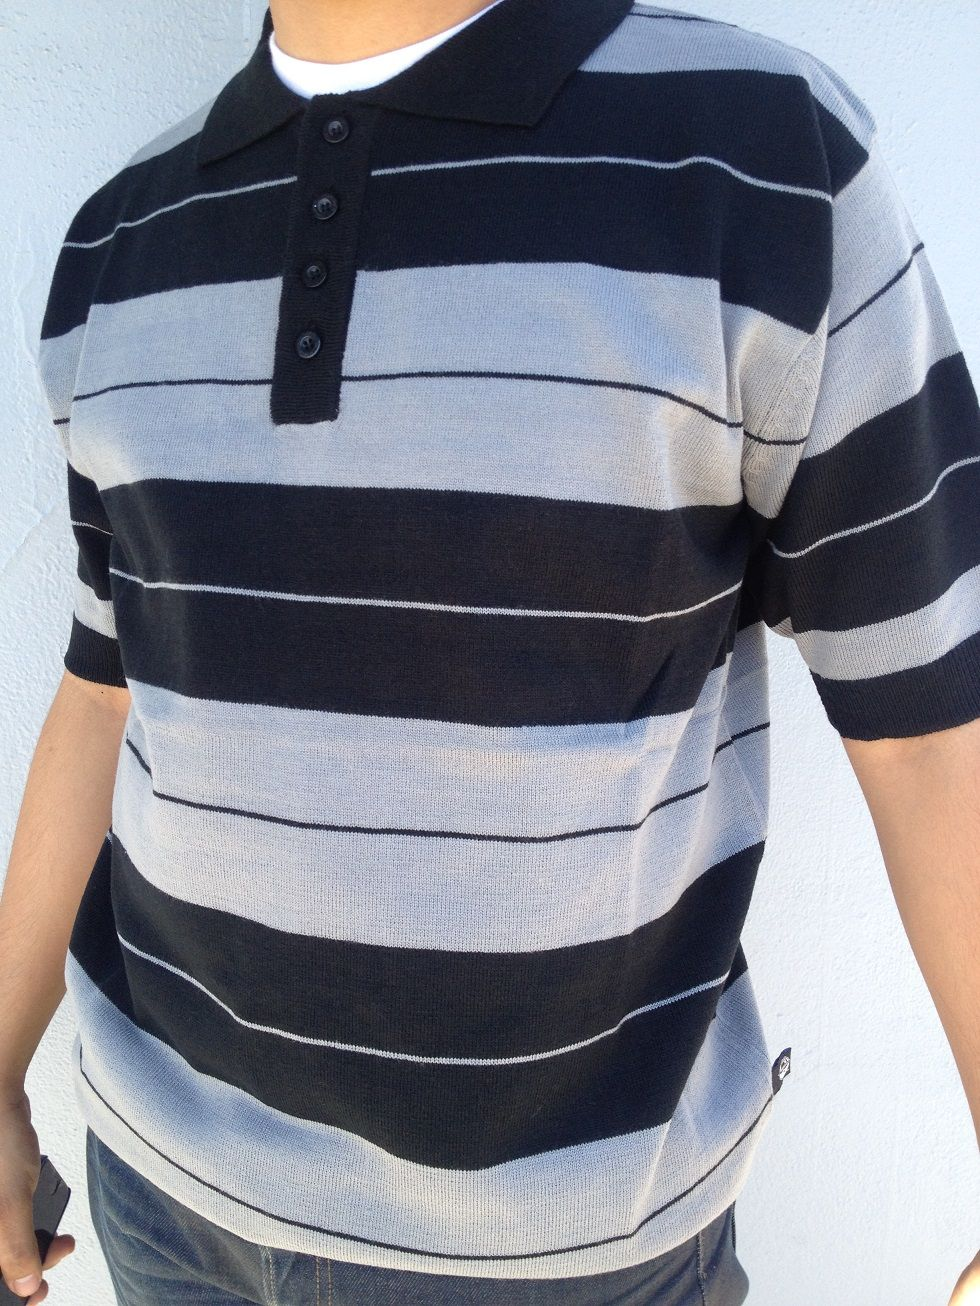 Black Gray Lowrider Charlie Brown Acrylic Knit Cholo Polo 426d74adfc